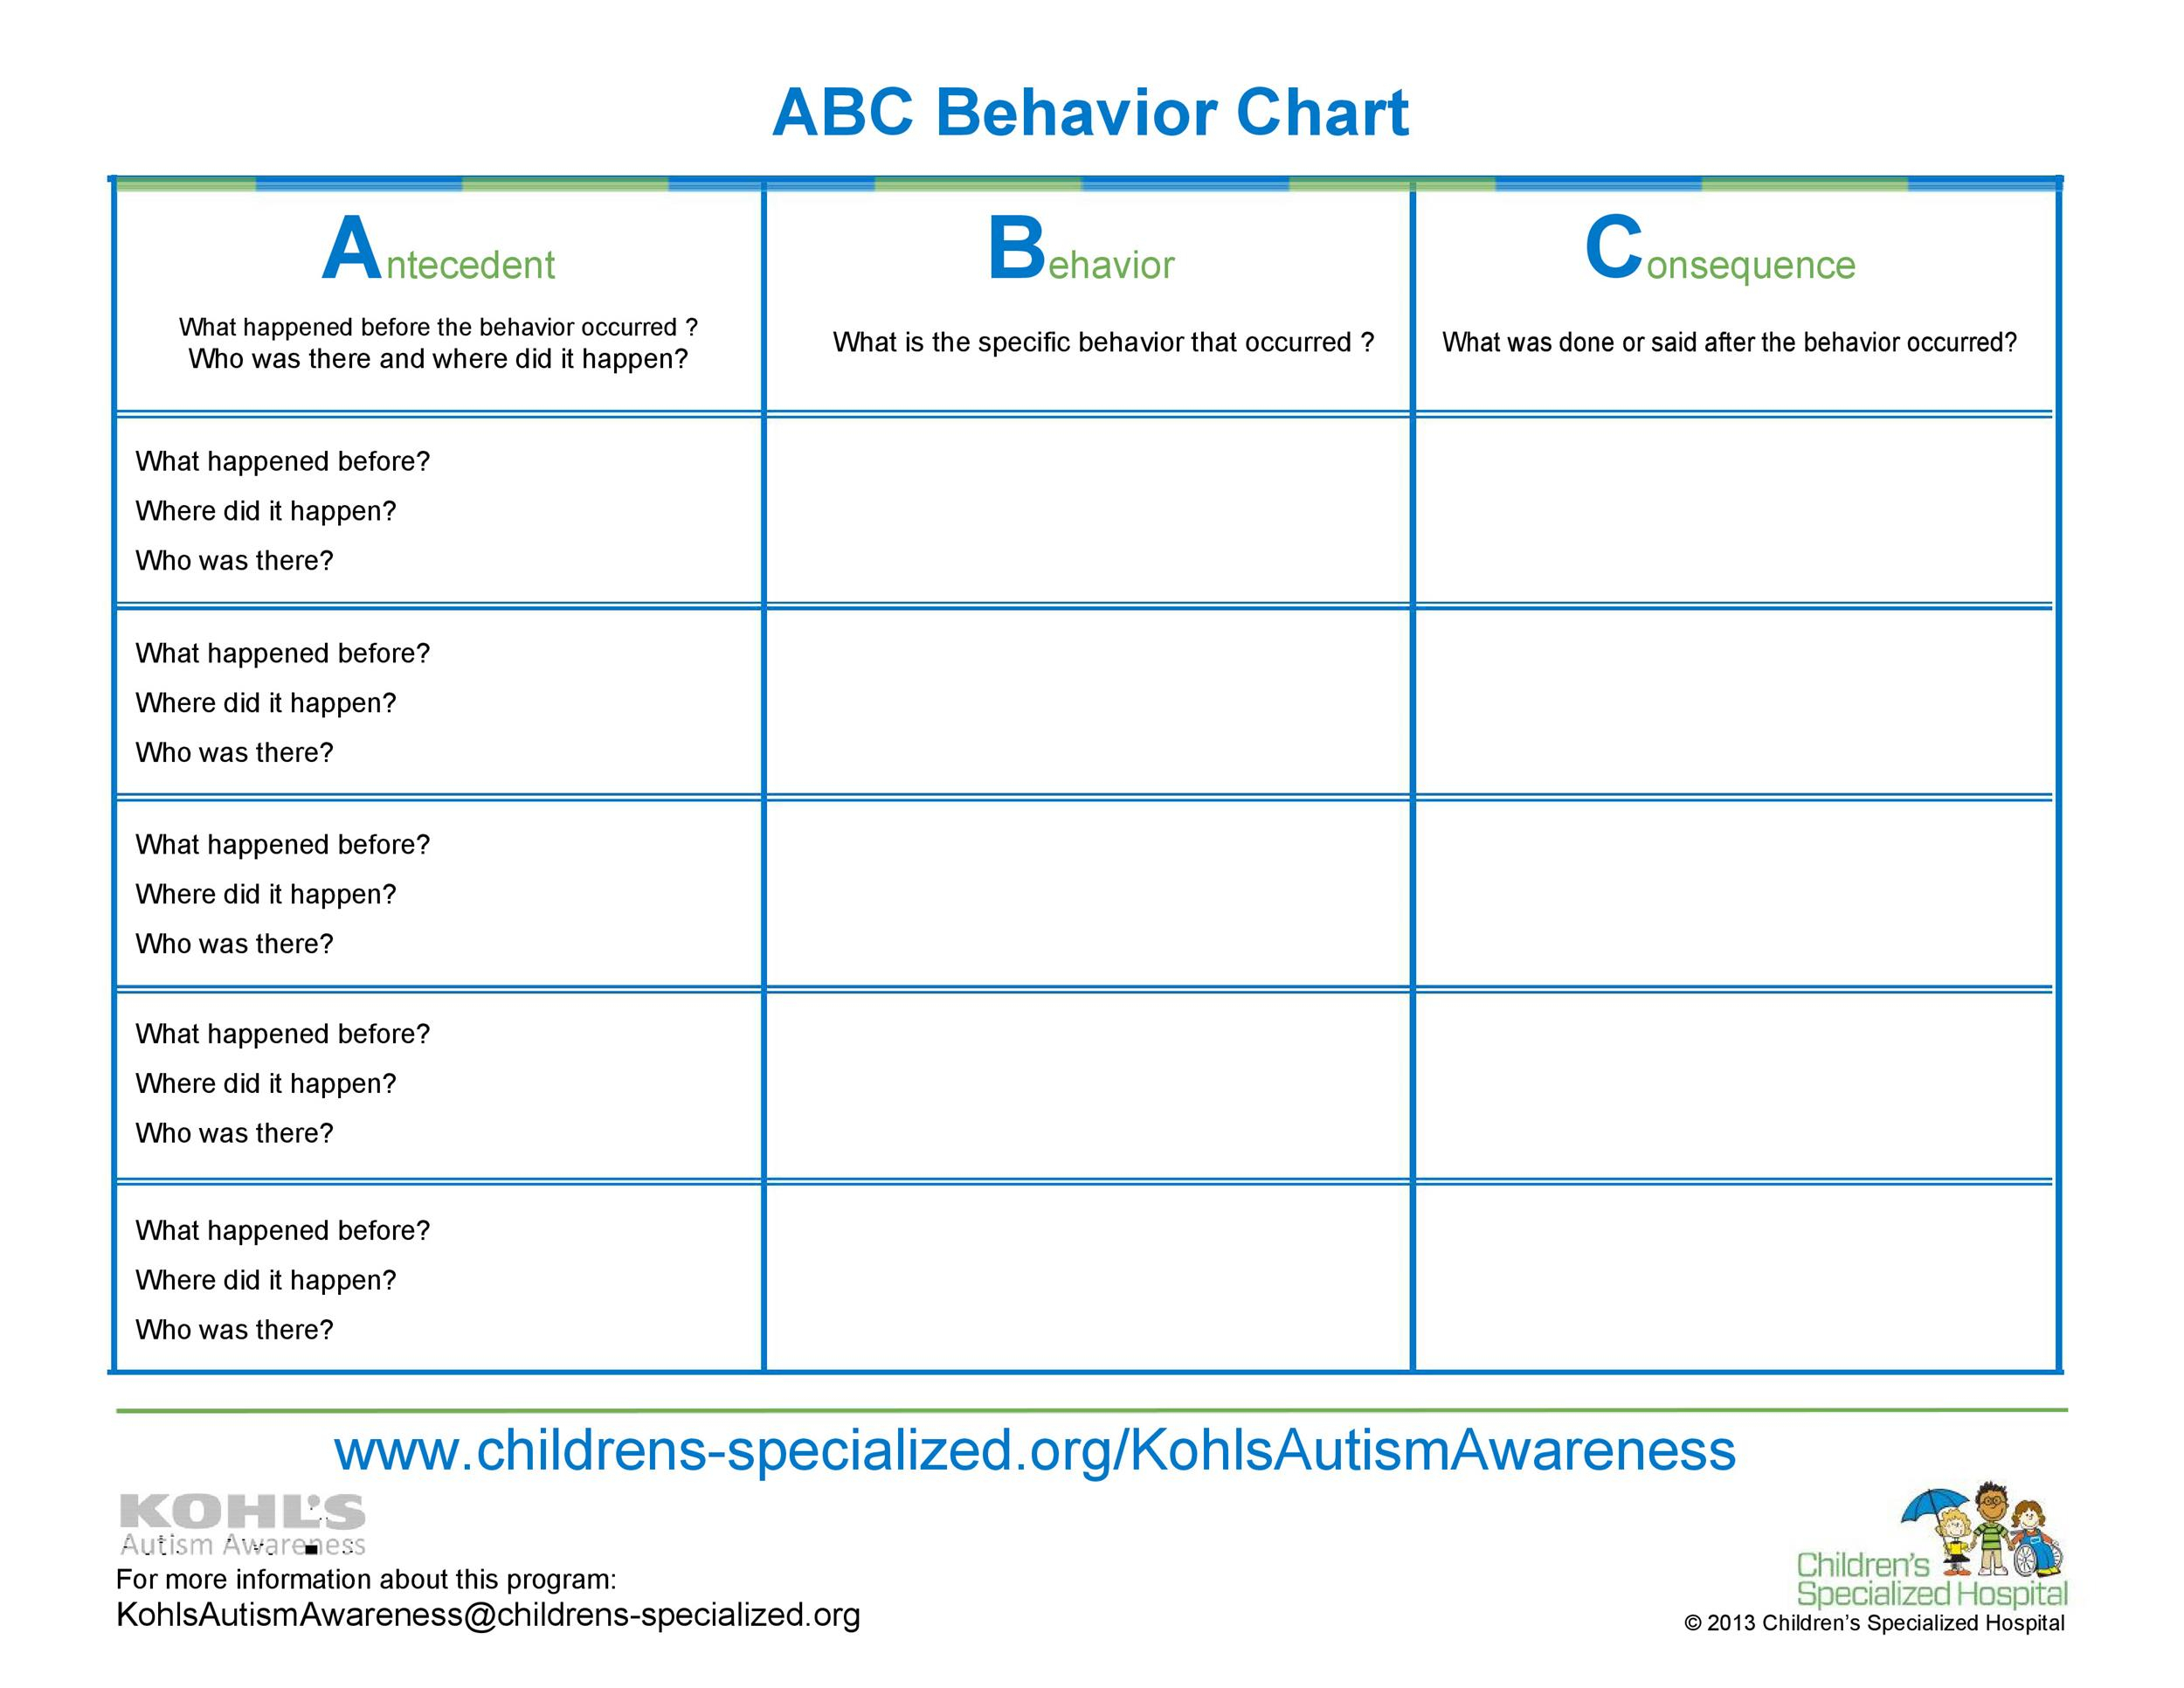 42 Printable Behavior Chart Templates [For Kids] ᐅ Templatelab in Monthly Behavior Chart